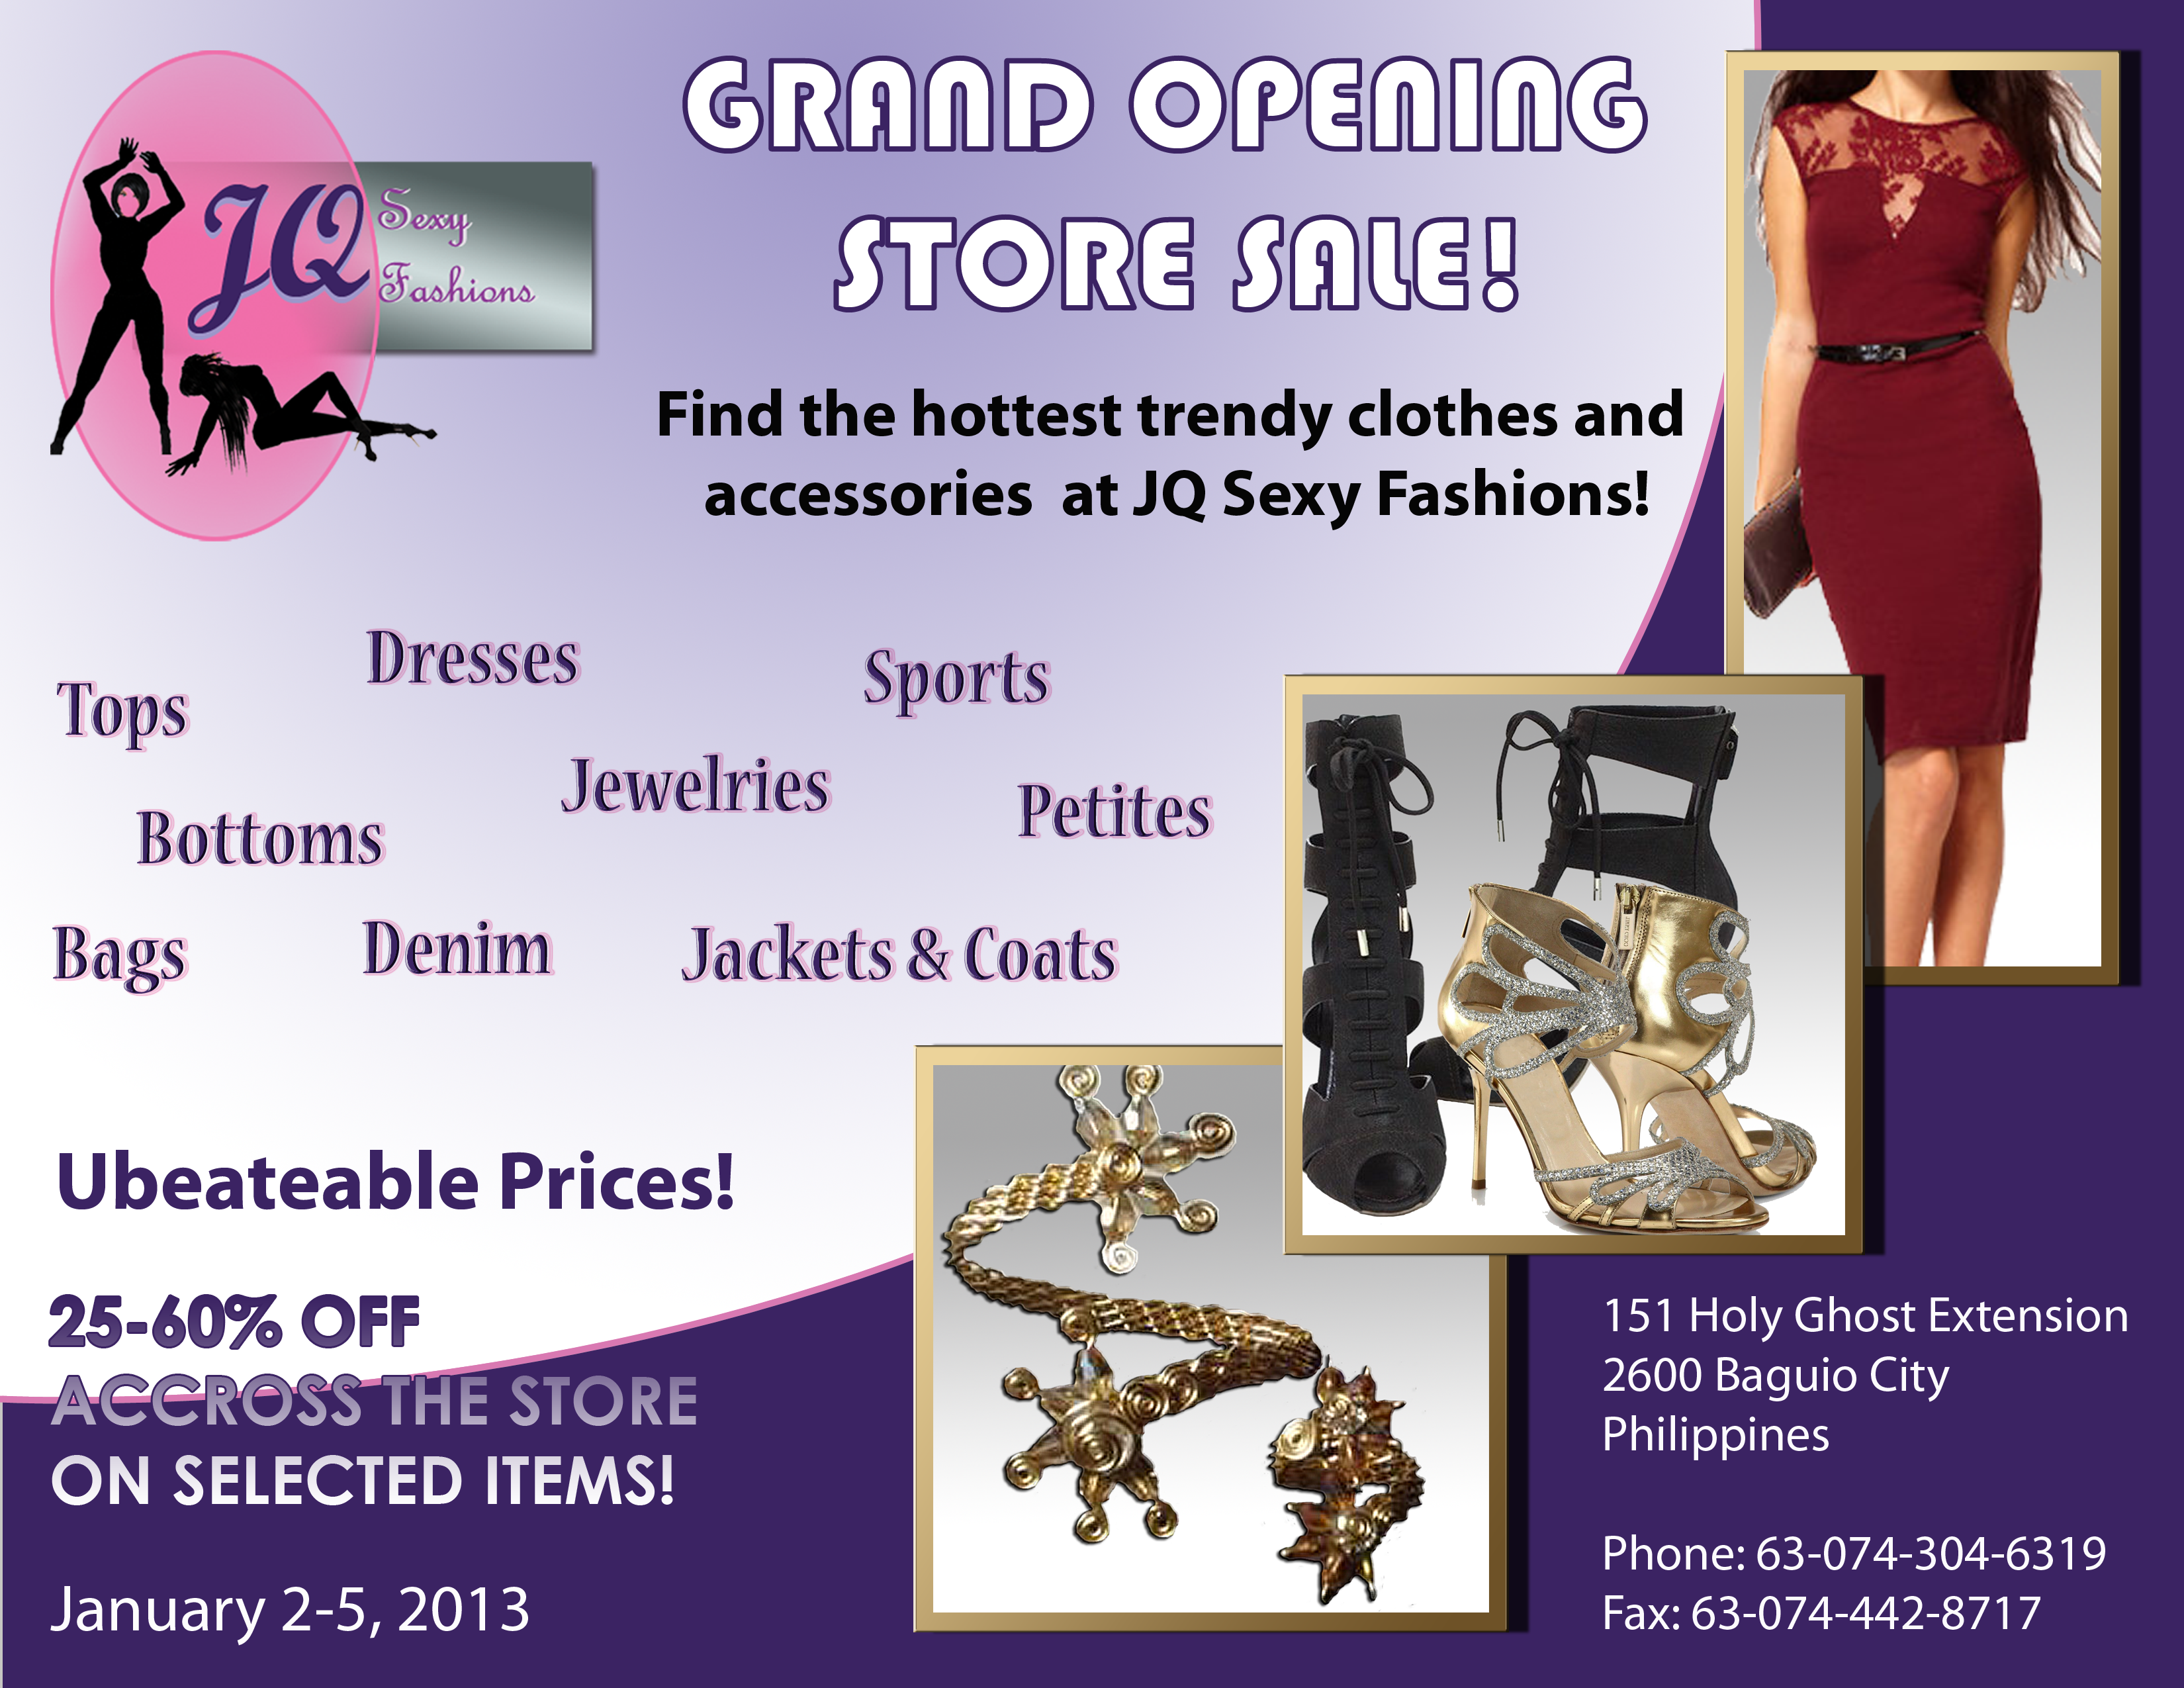 grand opening advertising flyer for clothing retailer impact